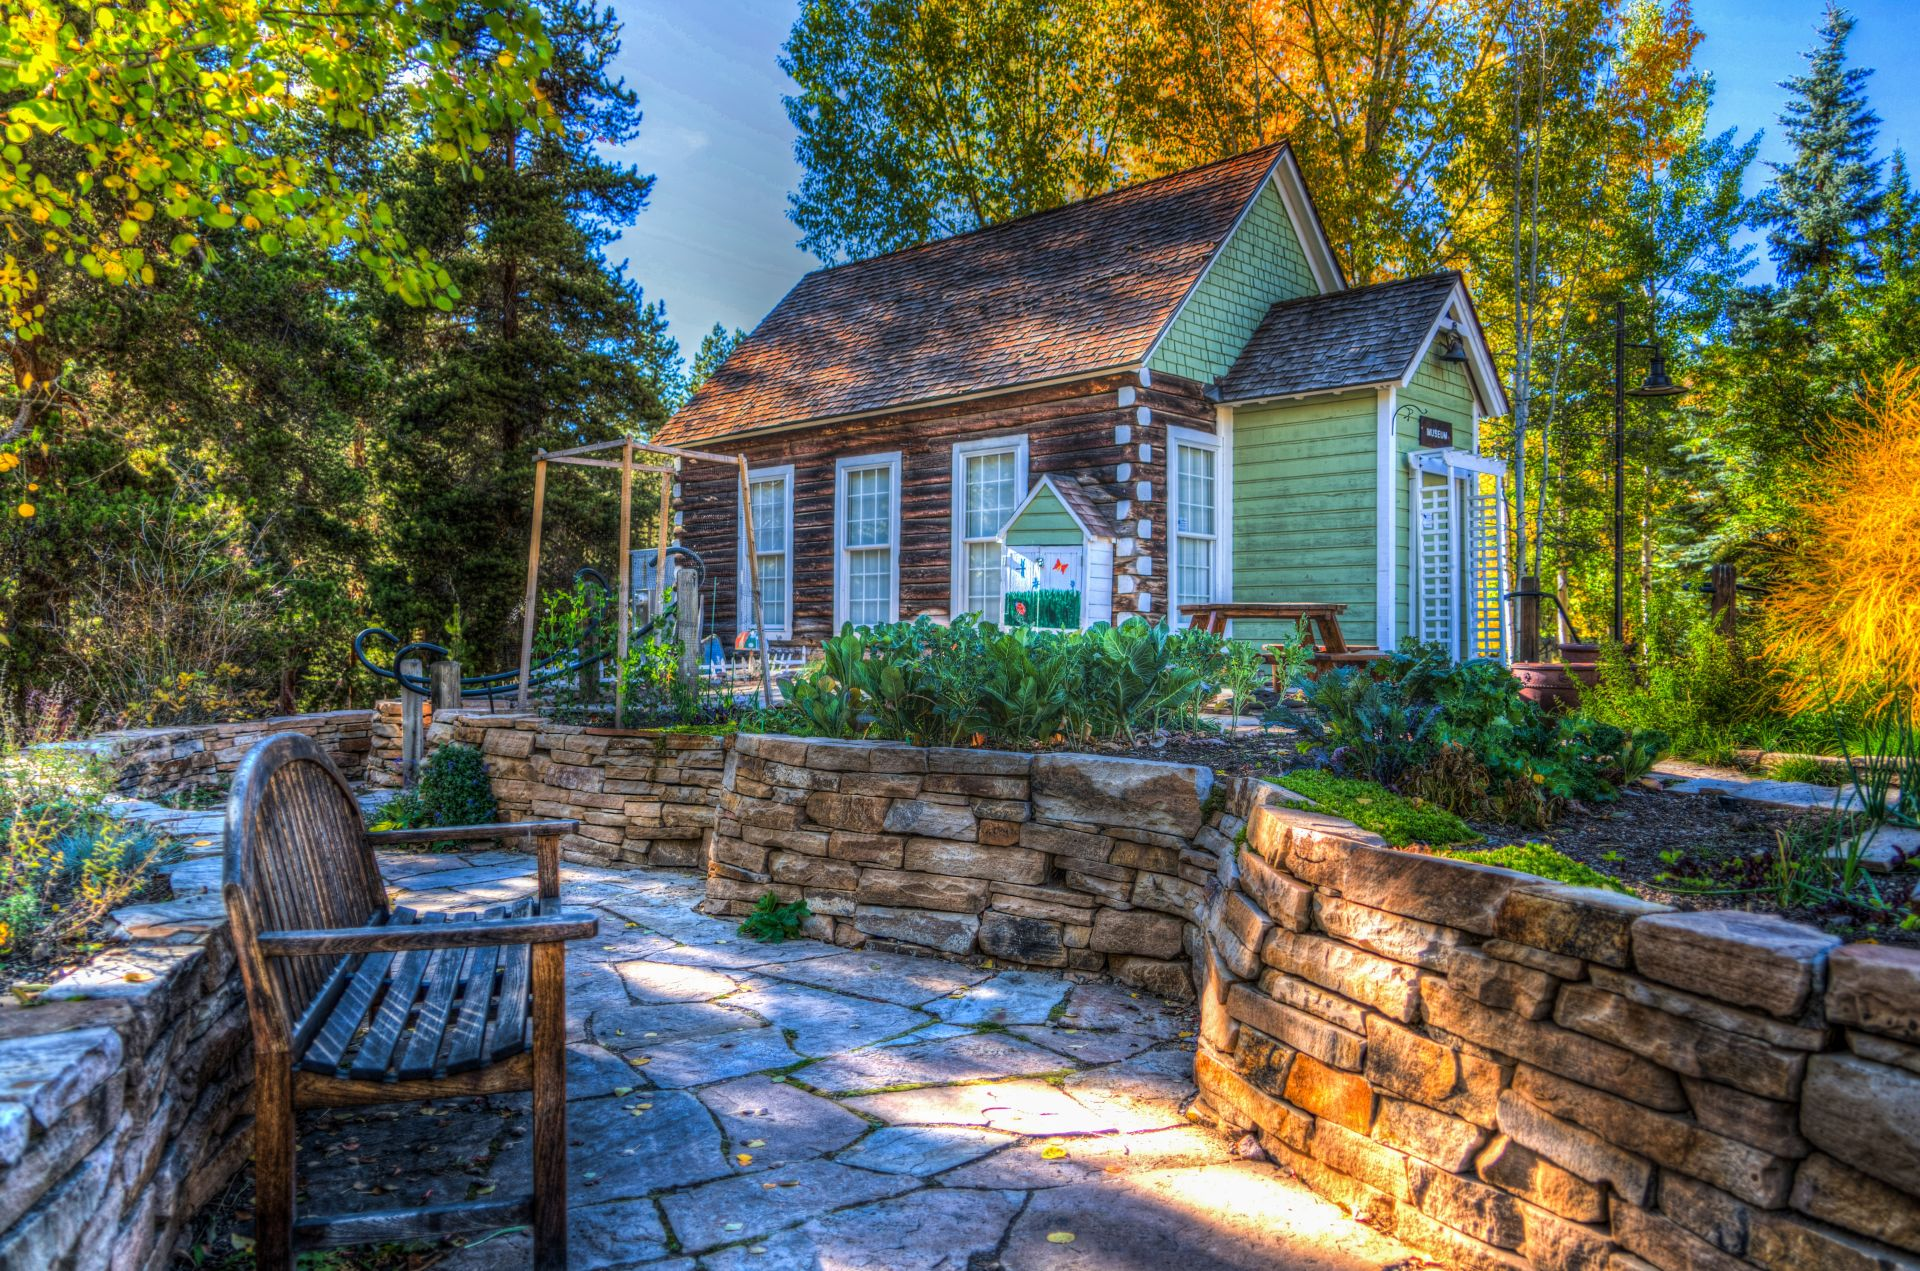 Deciding if a House on Acreage is Right for You